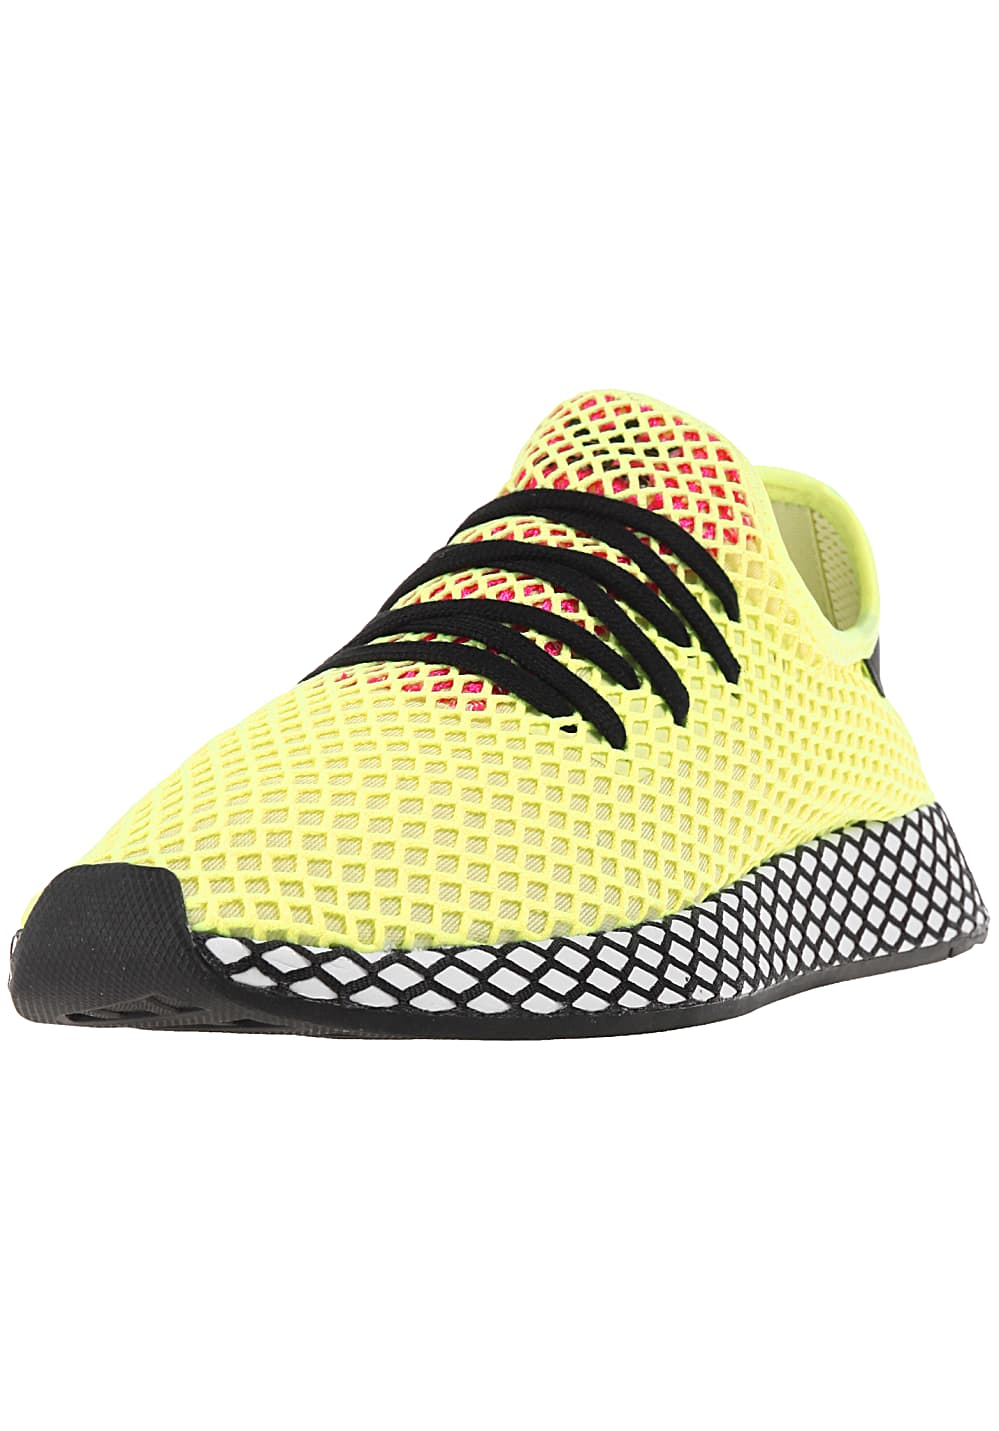 size 40 1f7b4 074a0 Next. ADIDAS ORIGINALS. Deerupt Runner - Sneakers for Men